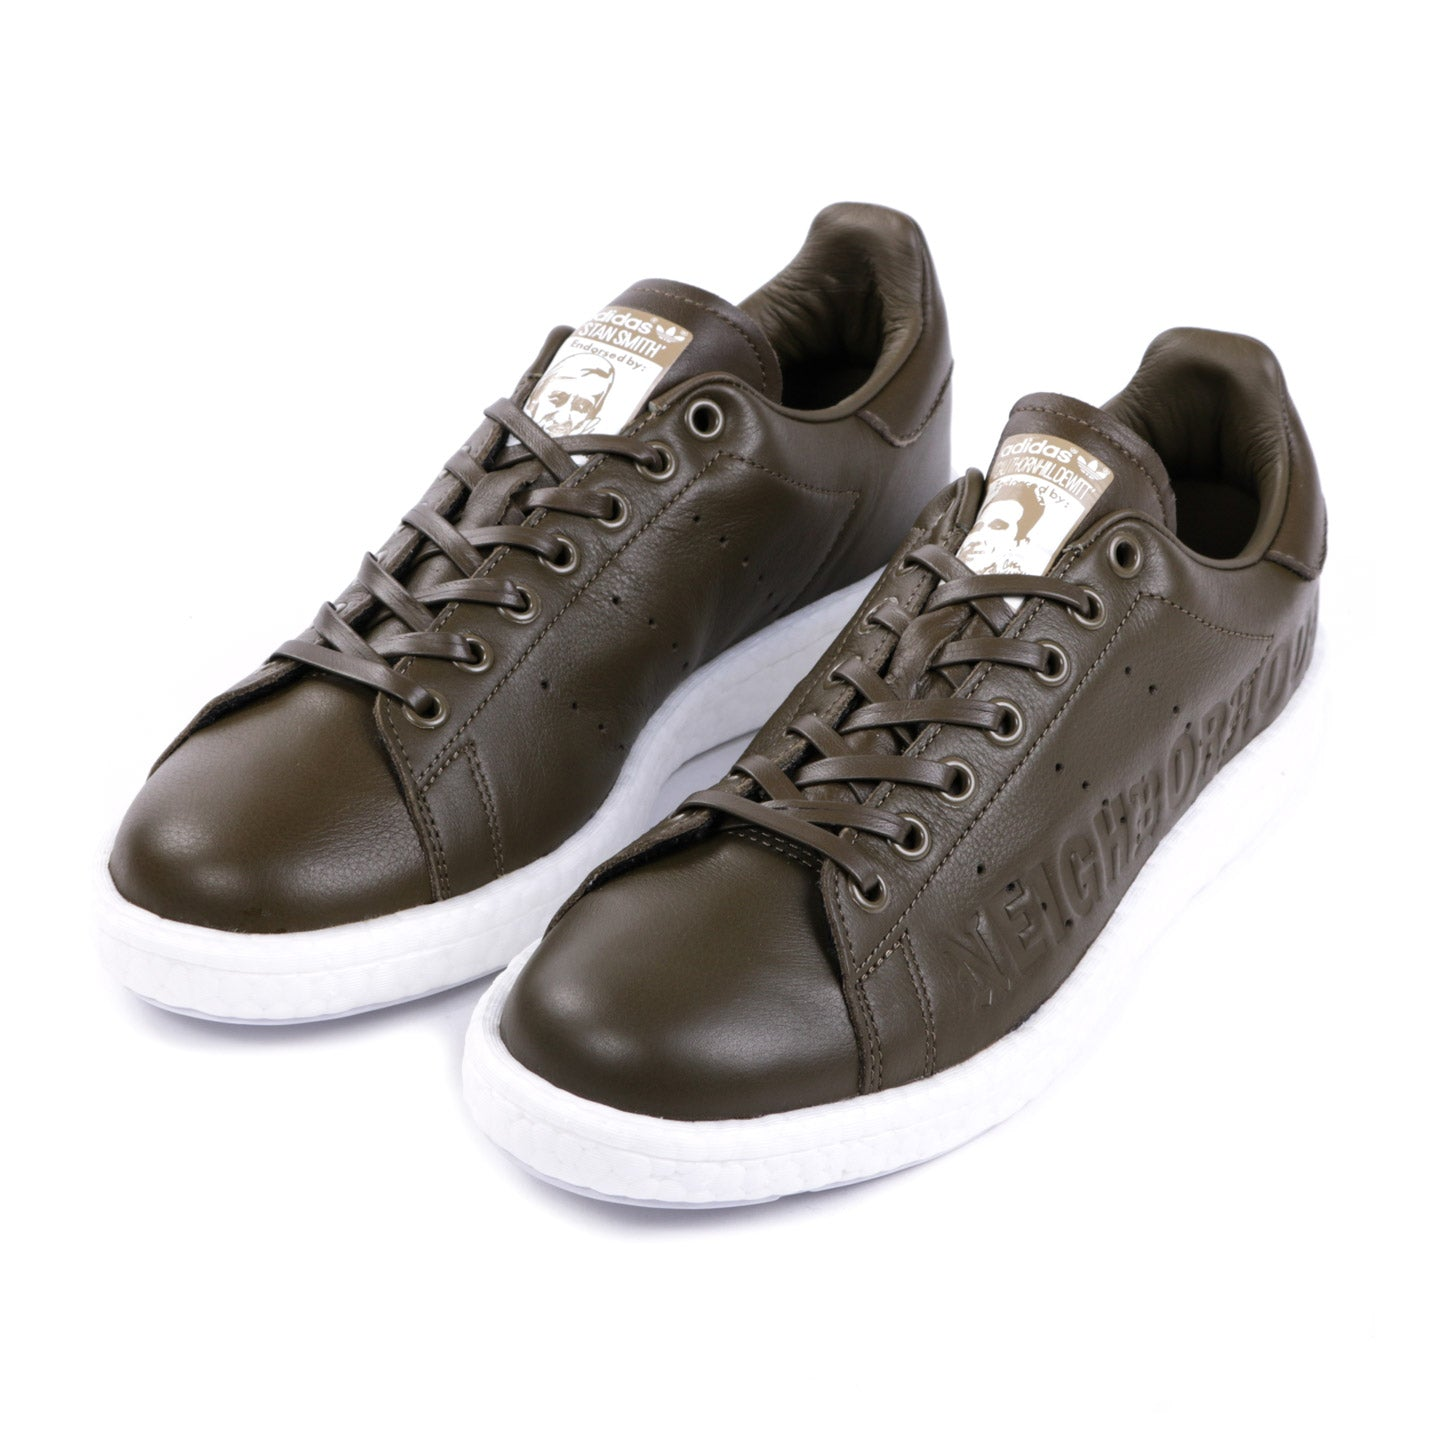 0573edcf01a9 ADIDAS ORIGINALS NEIGHBORHOOD CTD STAN SMITH BOOST OLIVE